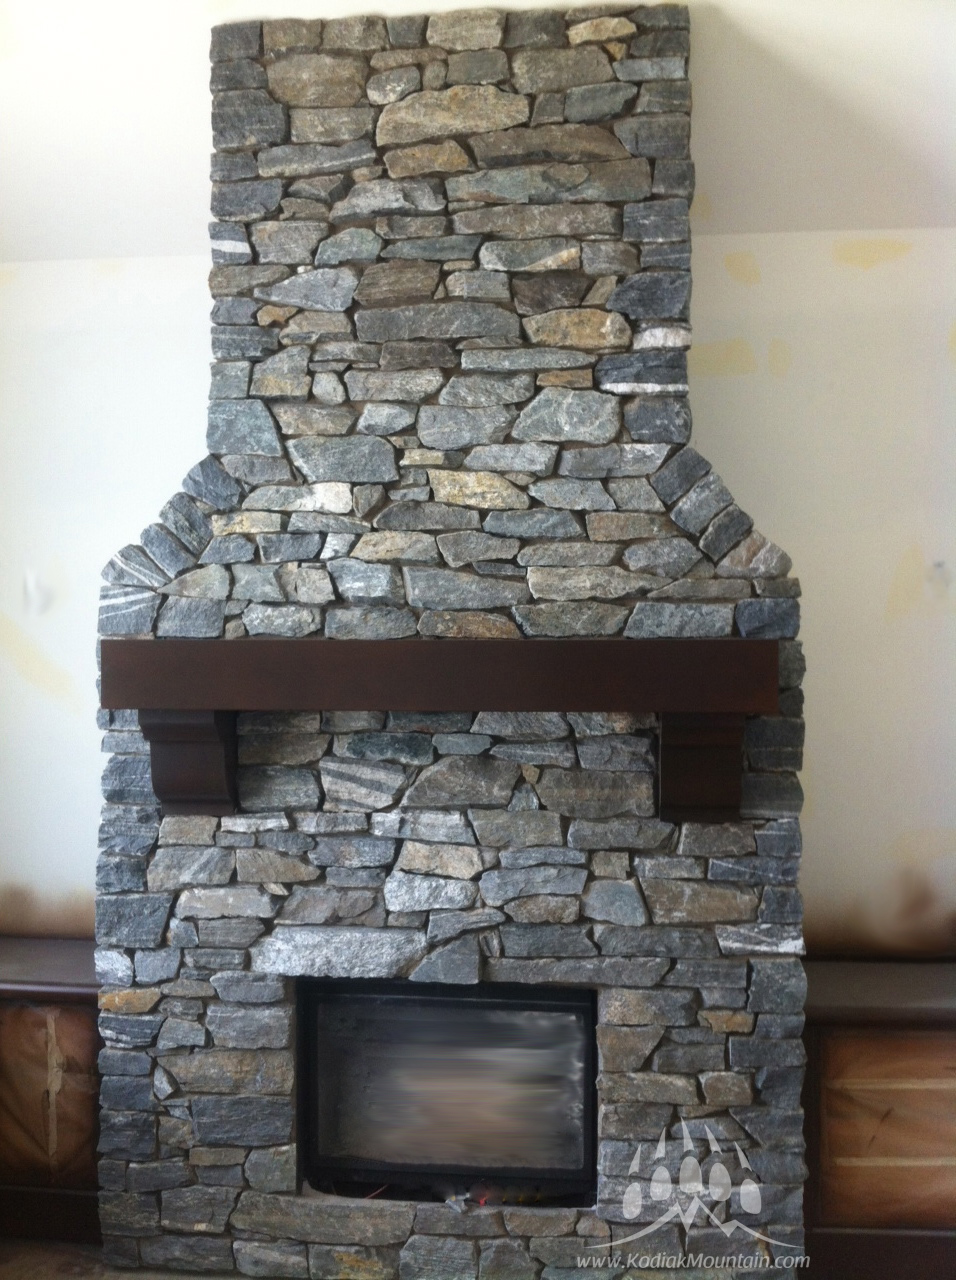 Starting A Manufactured Stone Business